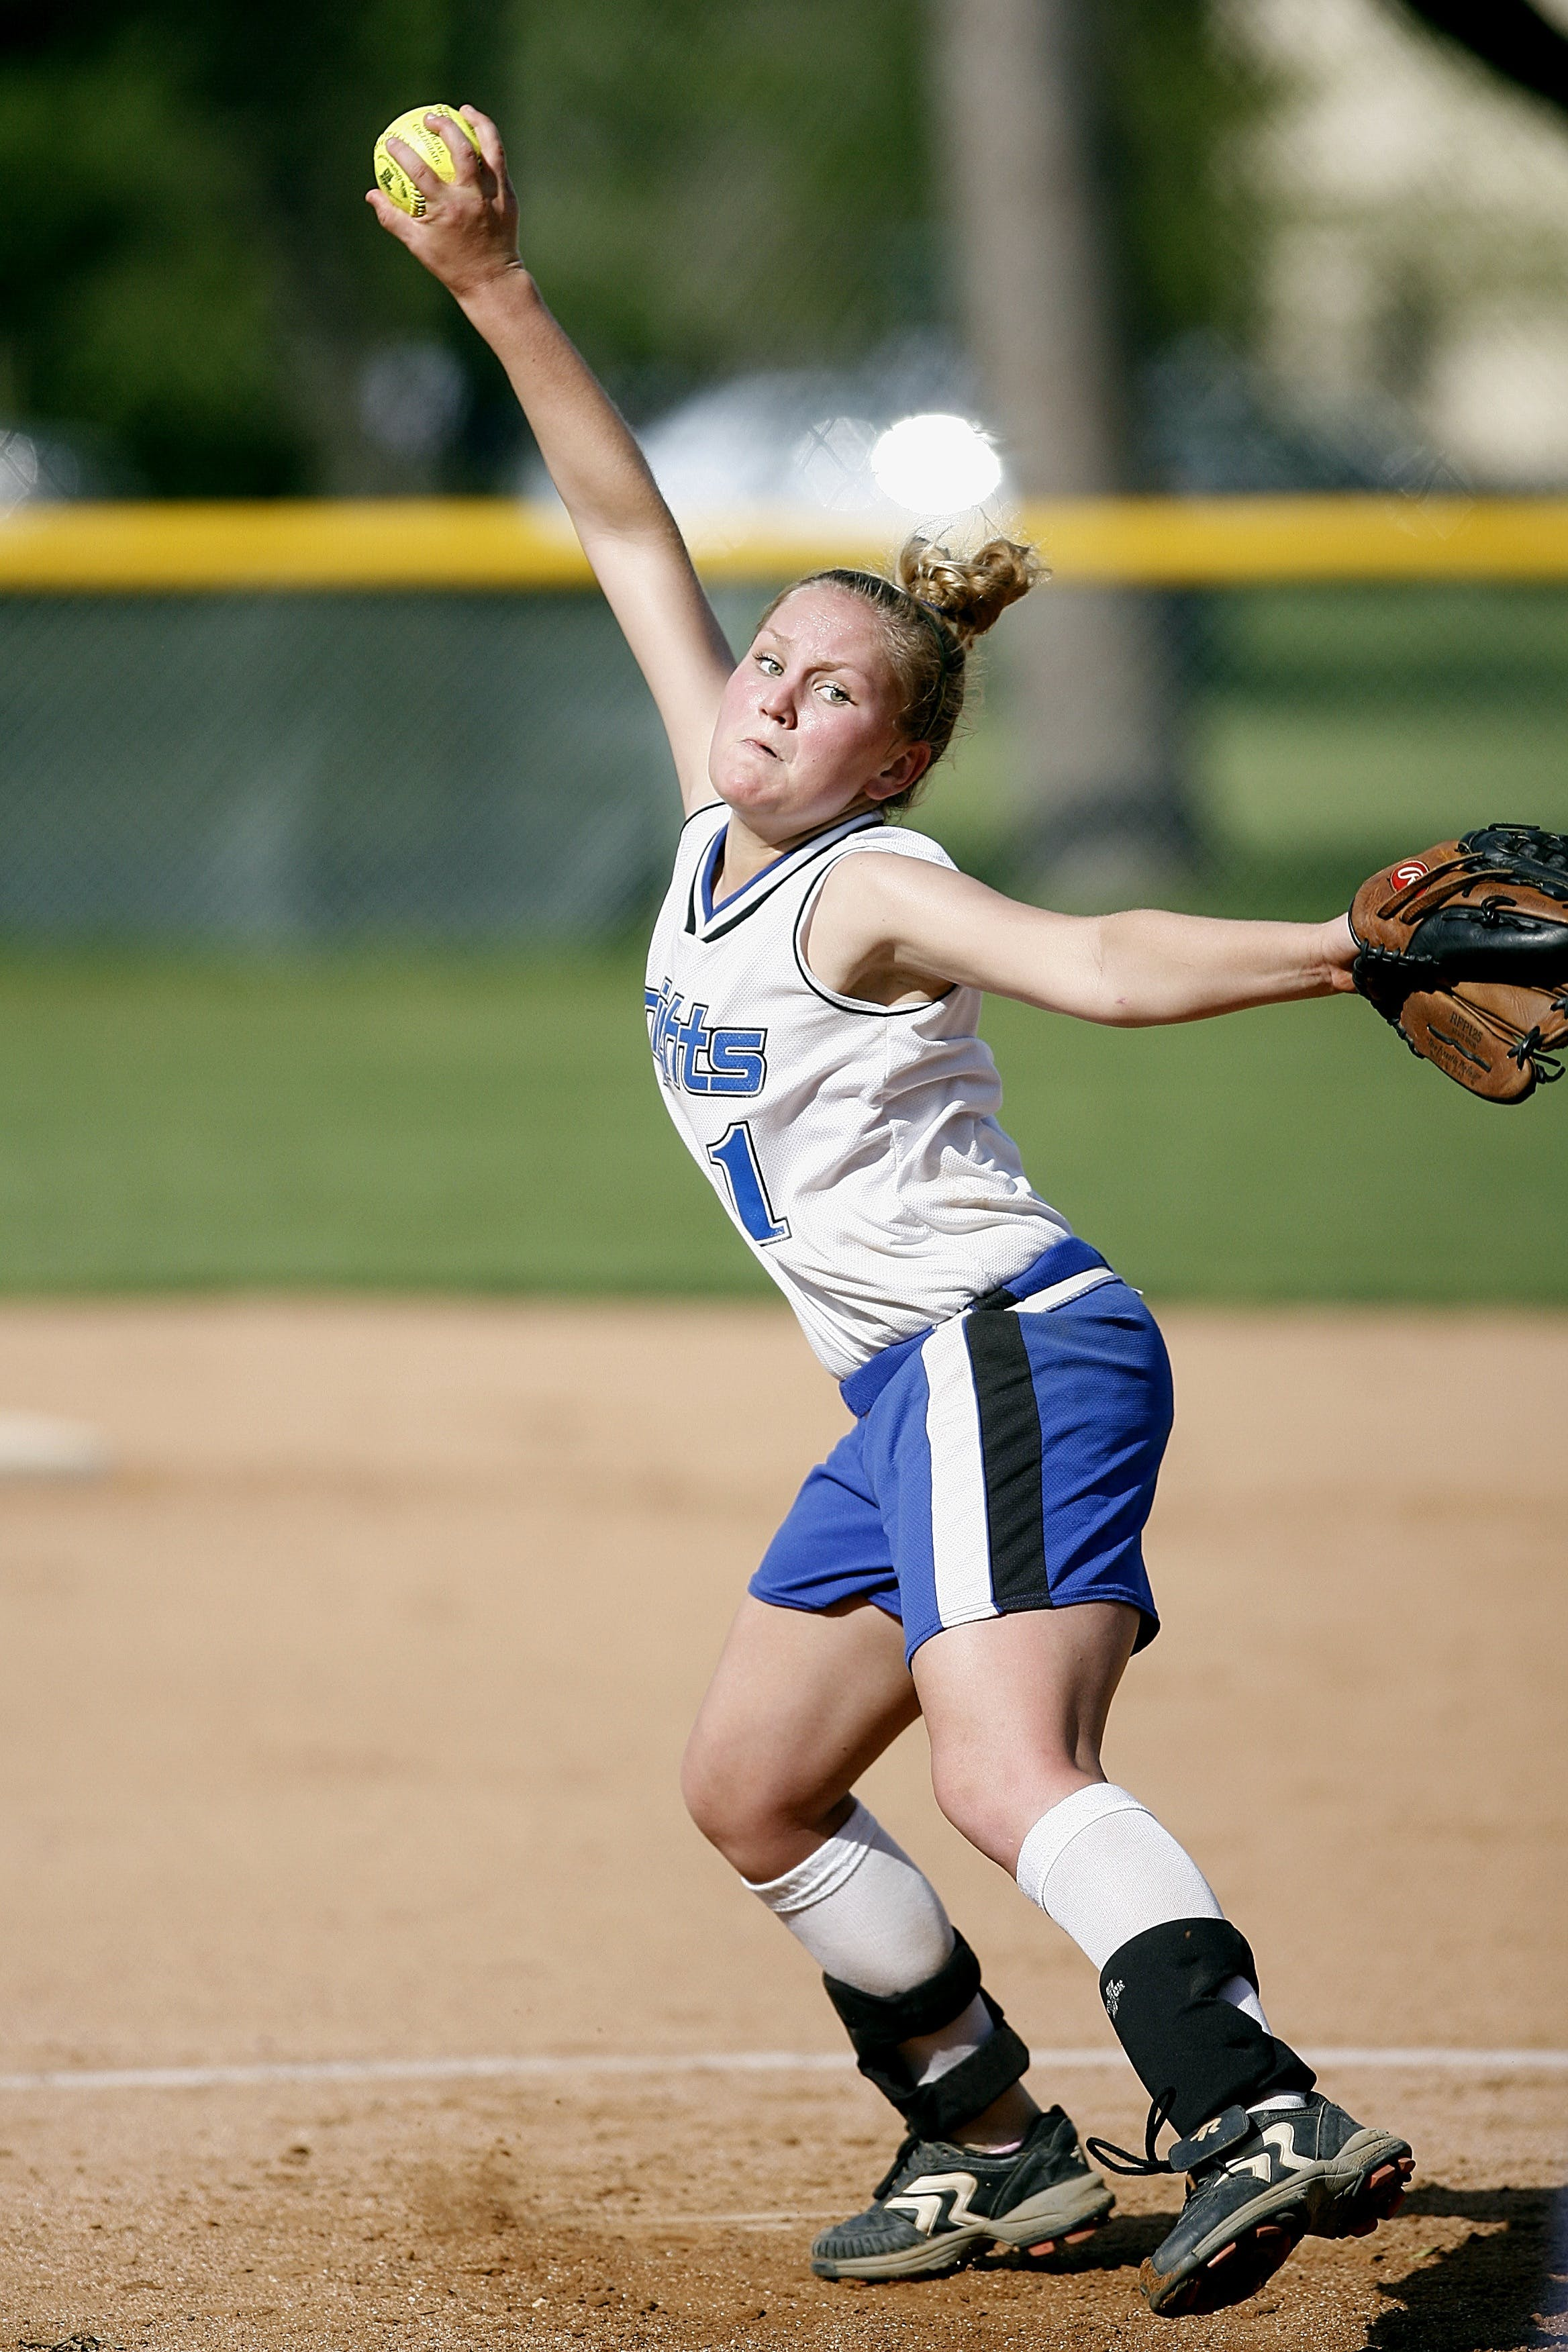 Woman in White and Blue Baseball Jersey Pitching the Ball